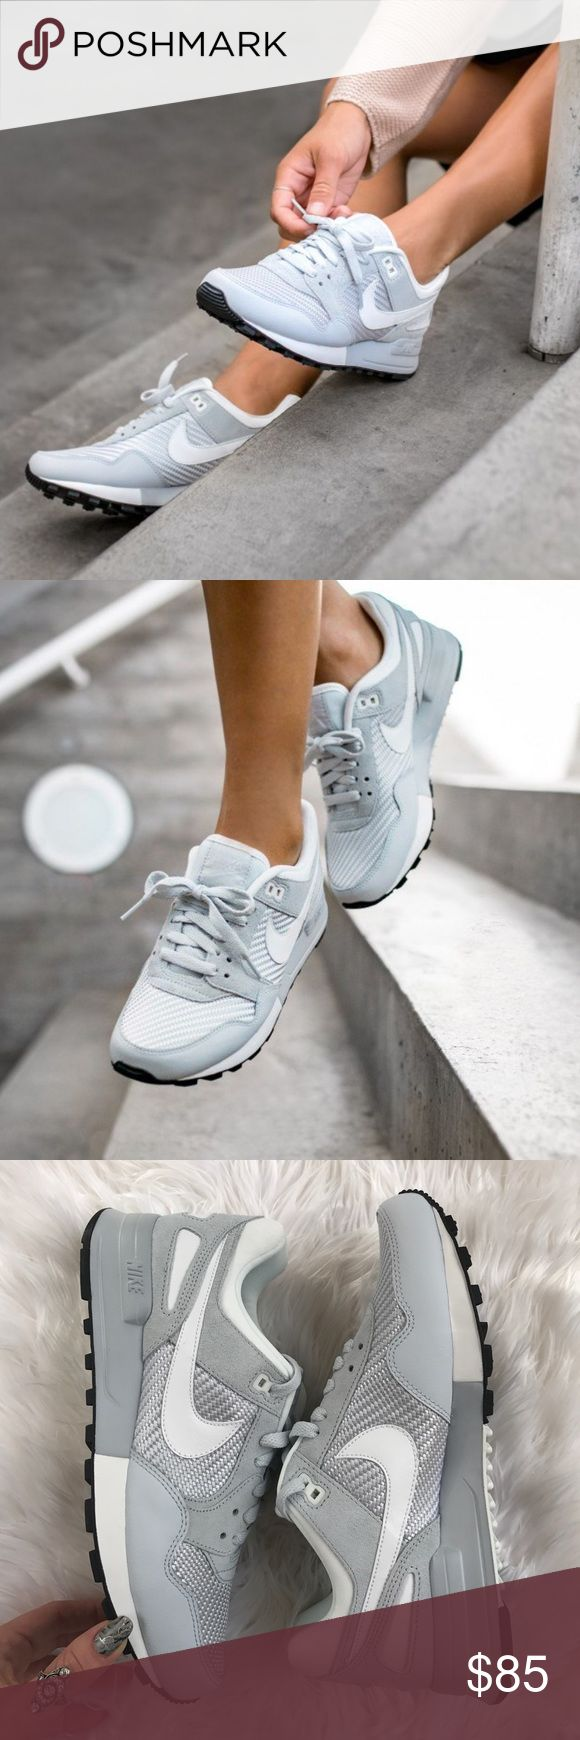 NWT nike Air Pegasus platinum Brand new no box lid,price is firm!A classic Nike BRS shoe from '89.  Leather/textile upper for premium style. IP midsole for added comfort. Rubber outsole for traction and durability. Nike Shoes Sneakers